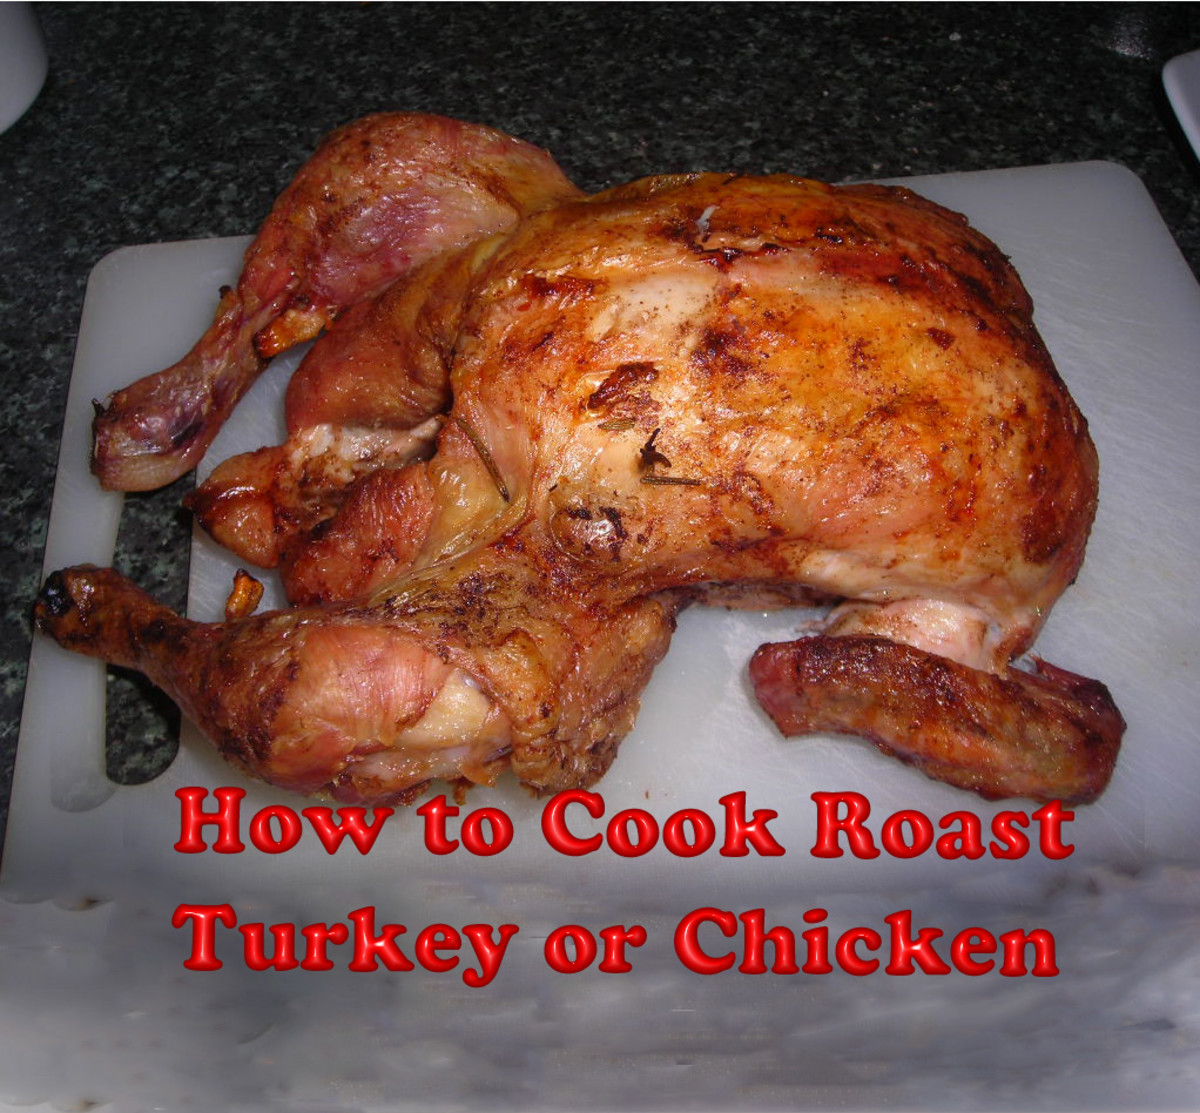 How to Cook Roast Turkey or Chicken - Sunday Dinner Recipe